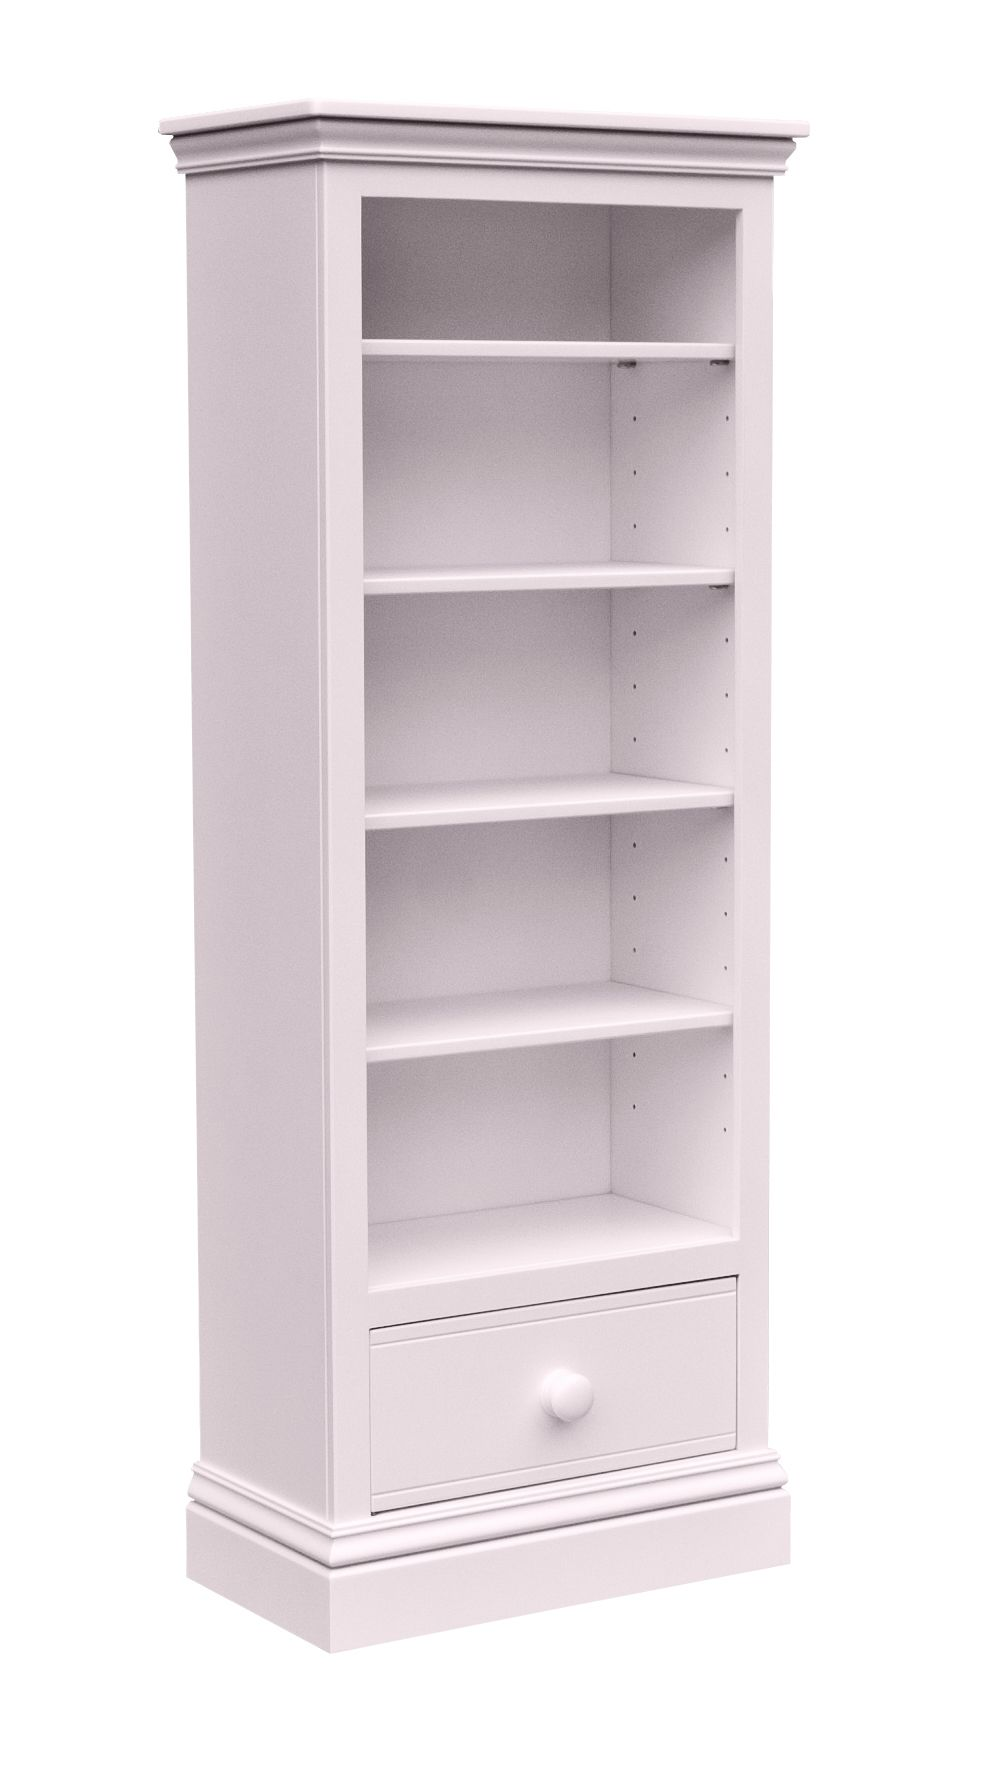 New Hampton Tall Bookcase - Candy Floss